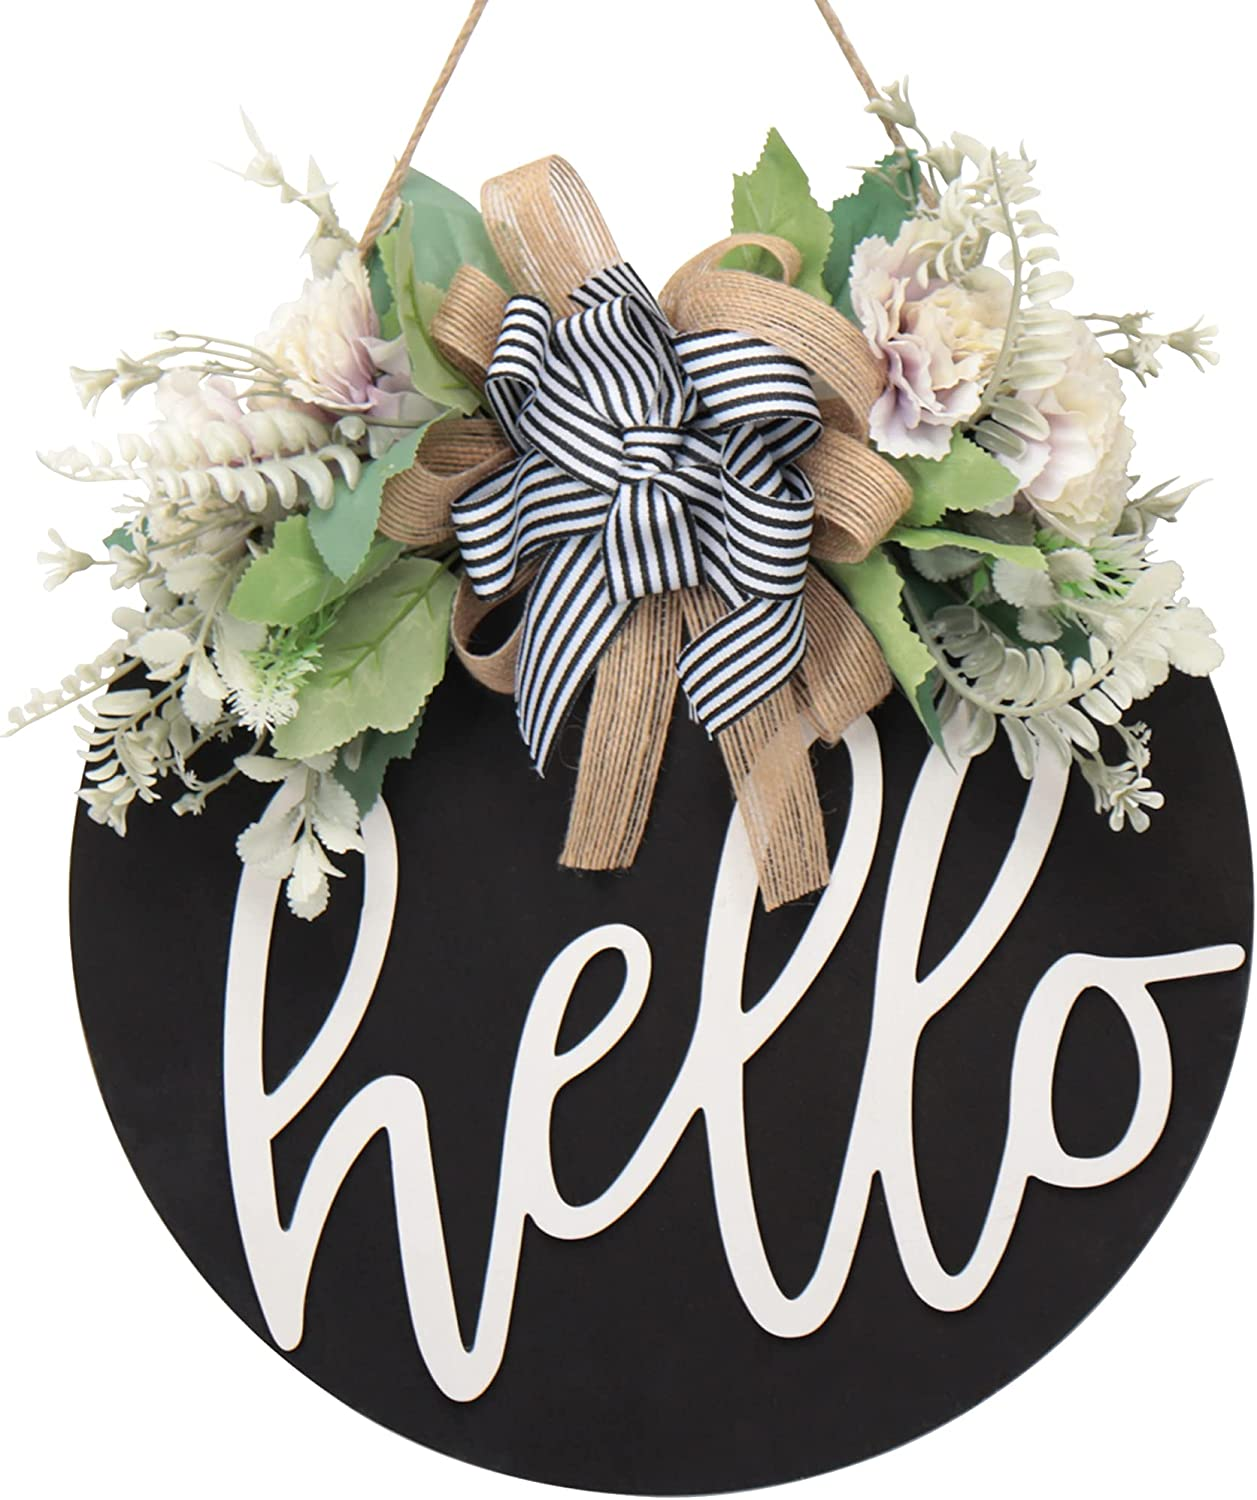 Welcome sign for front door wreaths for front door decor farmhouse porch decor outdoor Welcome 3D Front Door Hanger Door sign Wreath Welcome Farmhouse Sign for Front Door Decor Entry Way Wall Decor (A